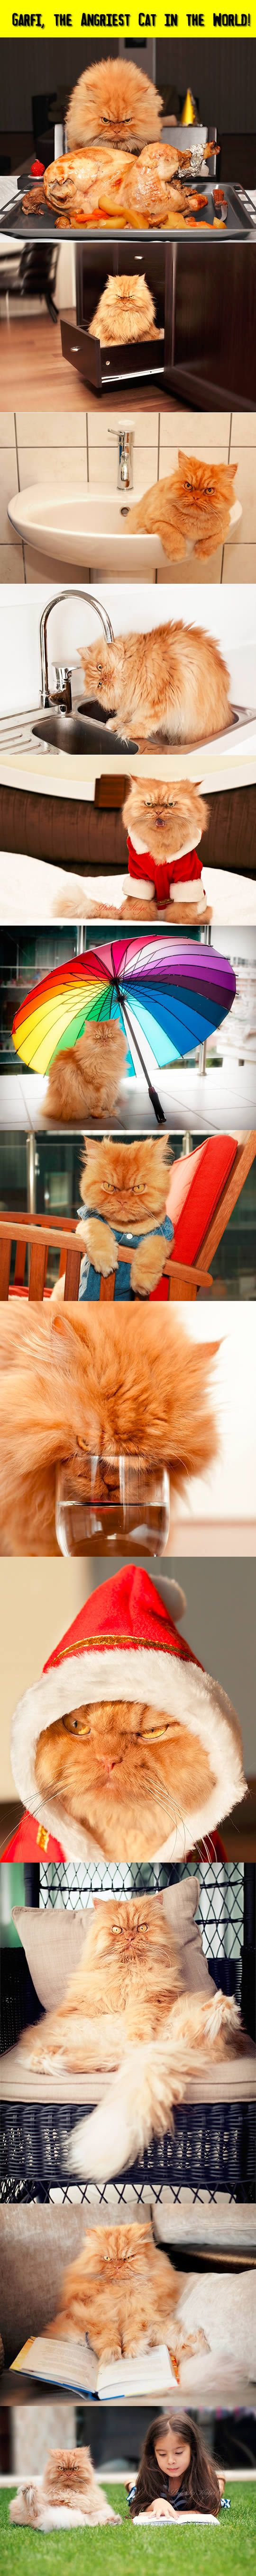 Best Garfi Cat Images On Pinterest Angry Cat Grumpy Cat And - Garfi is officially the worlds angriest cat